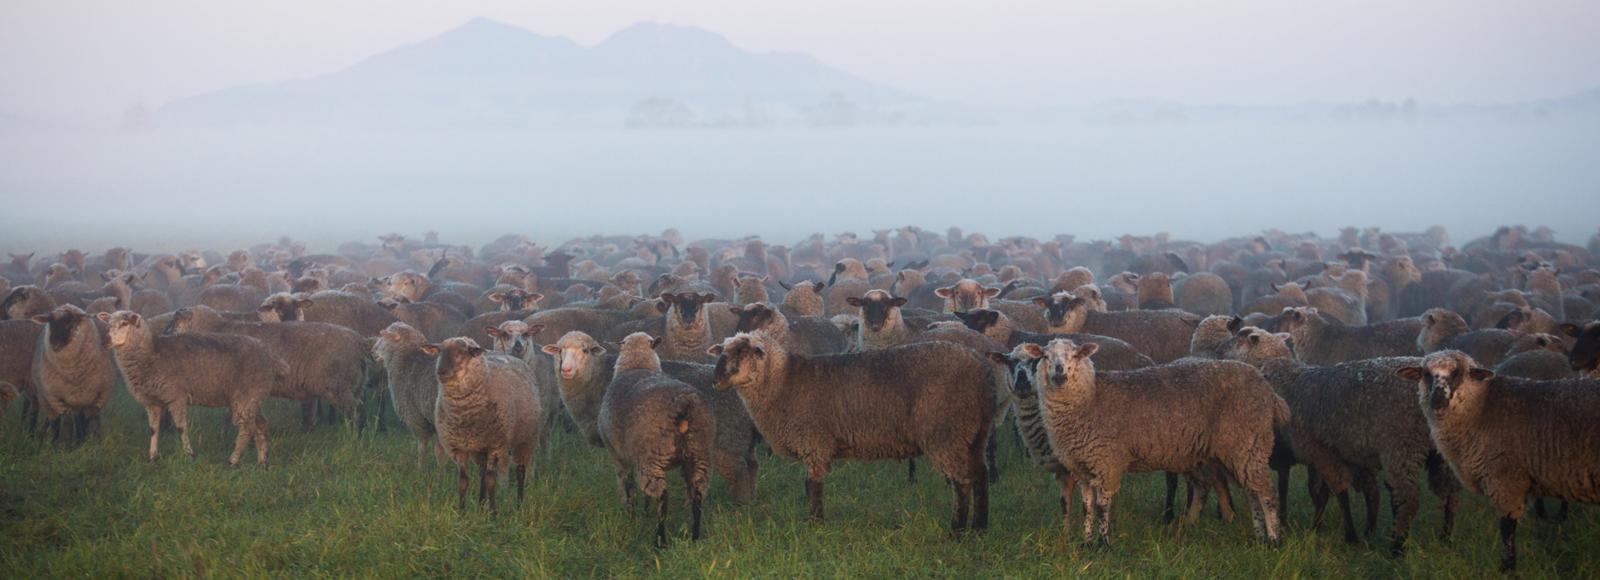 A large herd of sheep gathered in a field on a misty morning